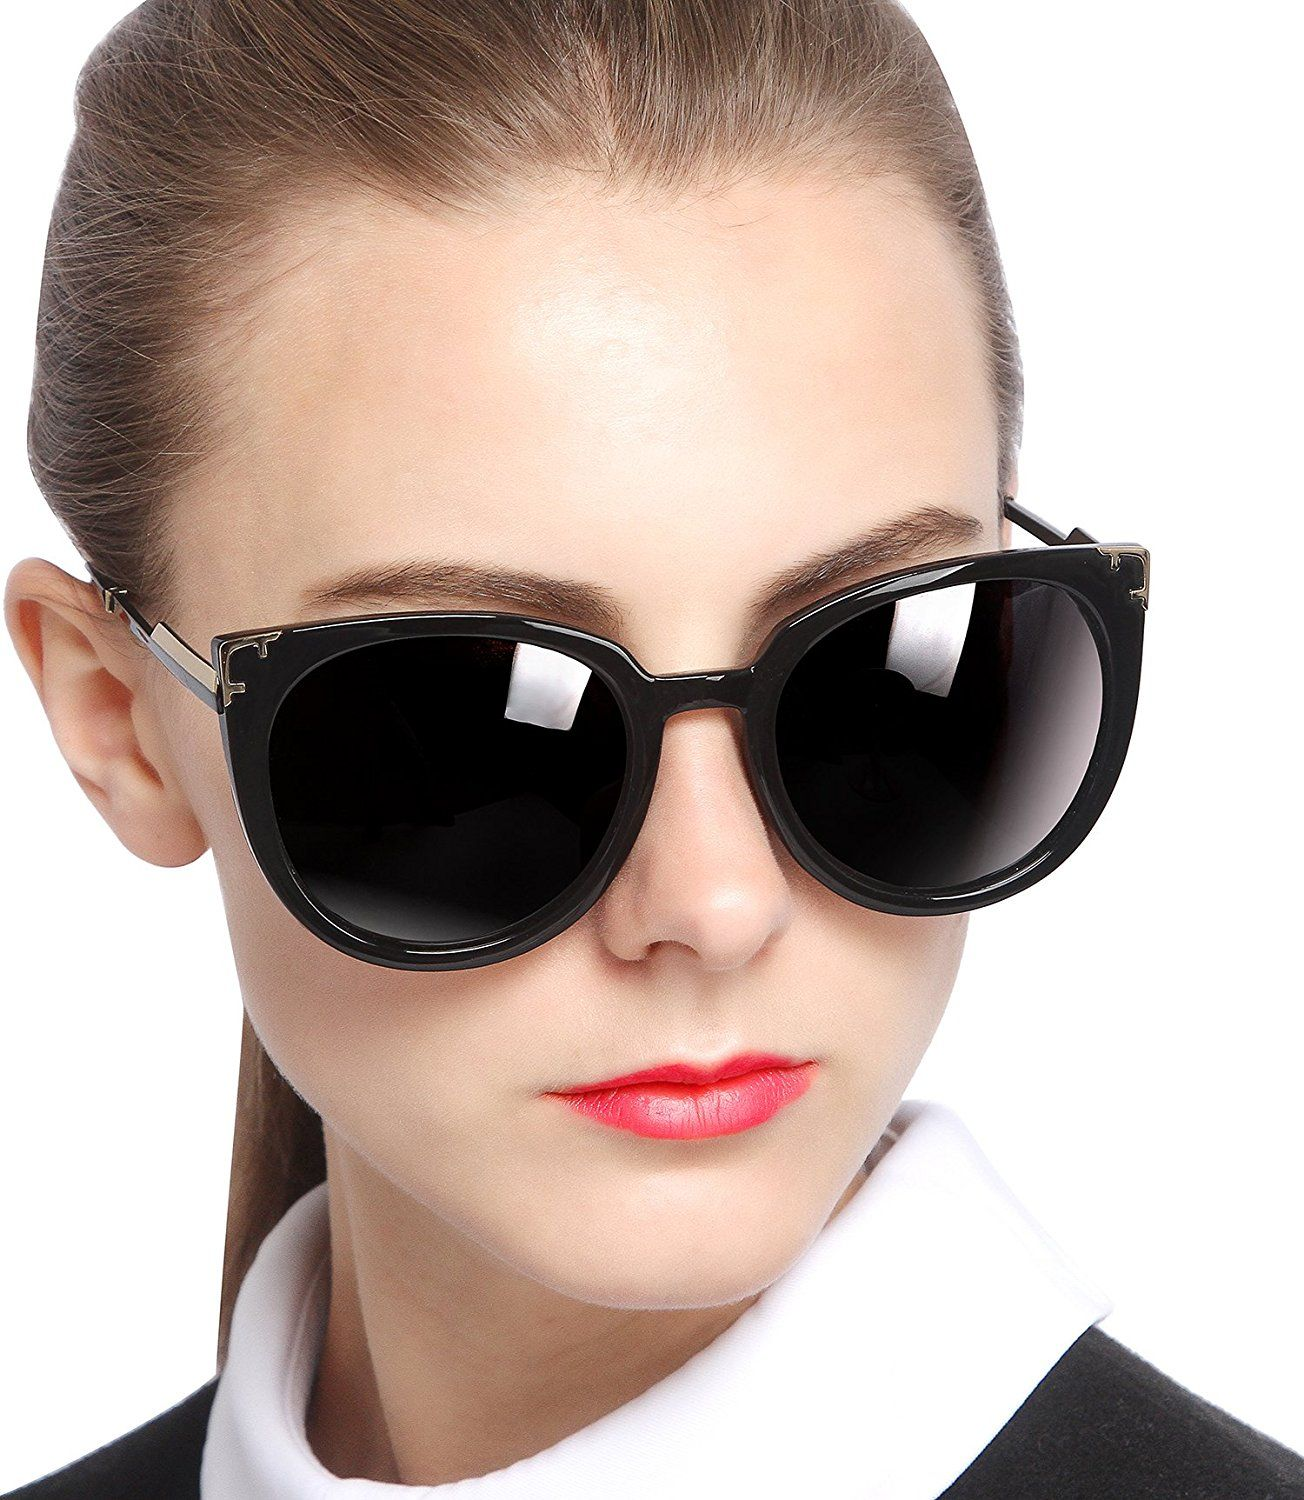 0854d81ff SIPLION Women's Fashion Retro Wayfarer Sunglasses For Women 100% Polarized  UV Protection 7605 Black: